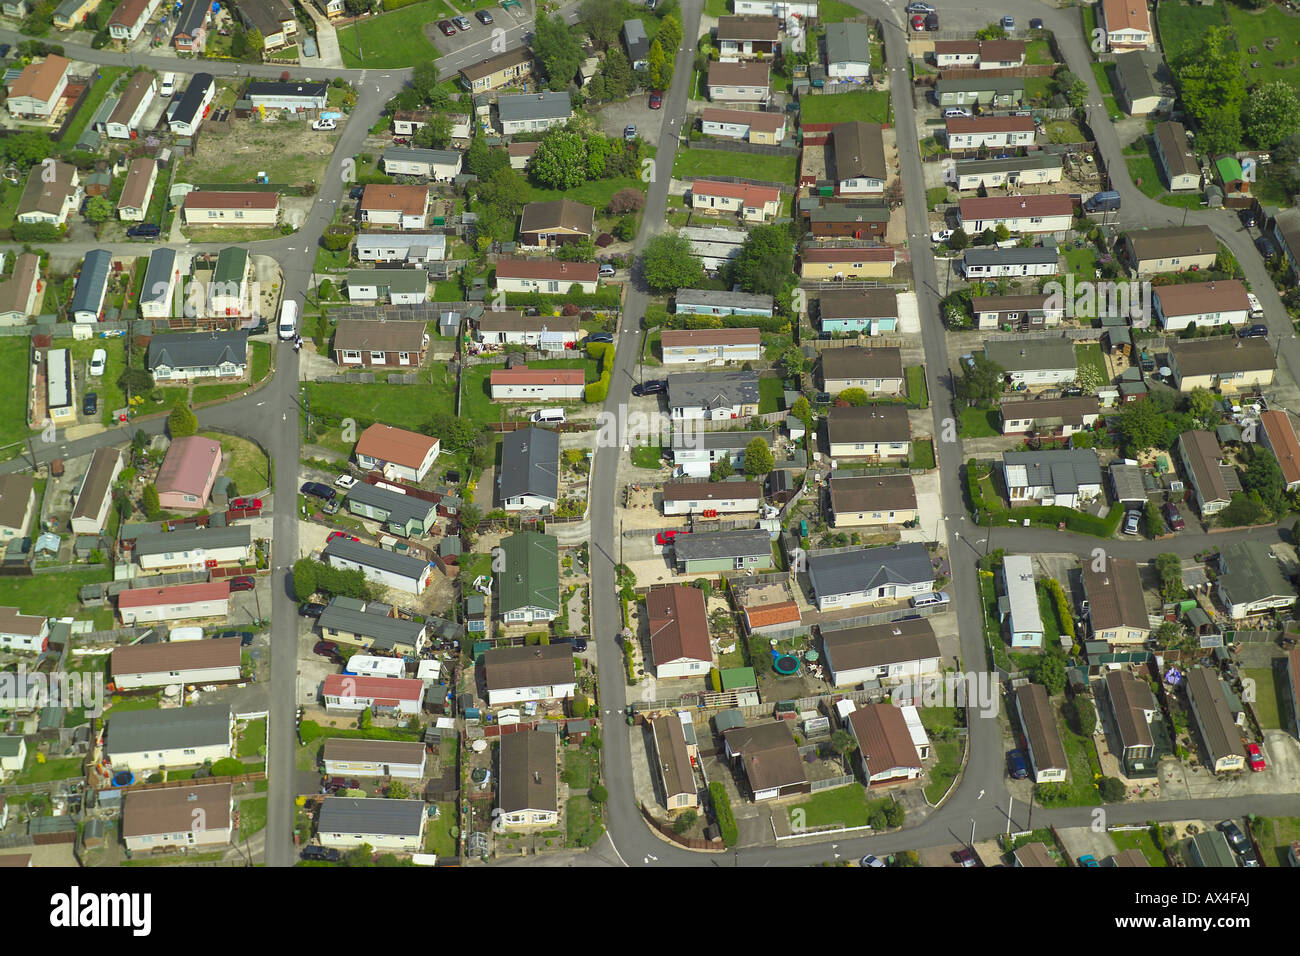 Aerial view of a mobile home park, also known as a caravan park or a trailer park Stock Photo